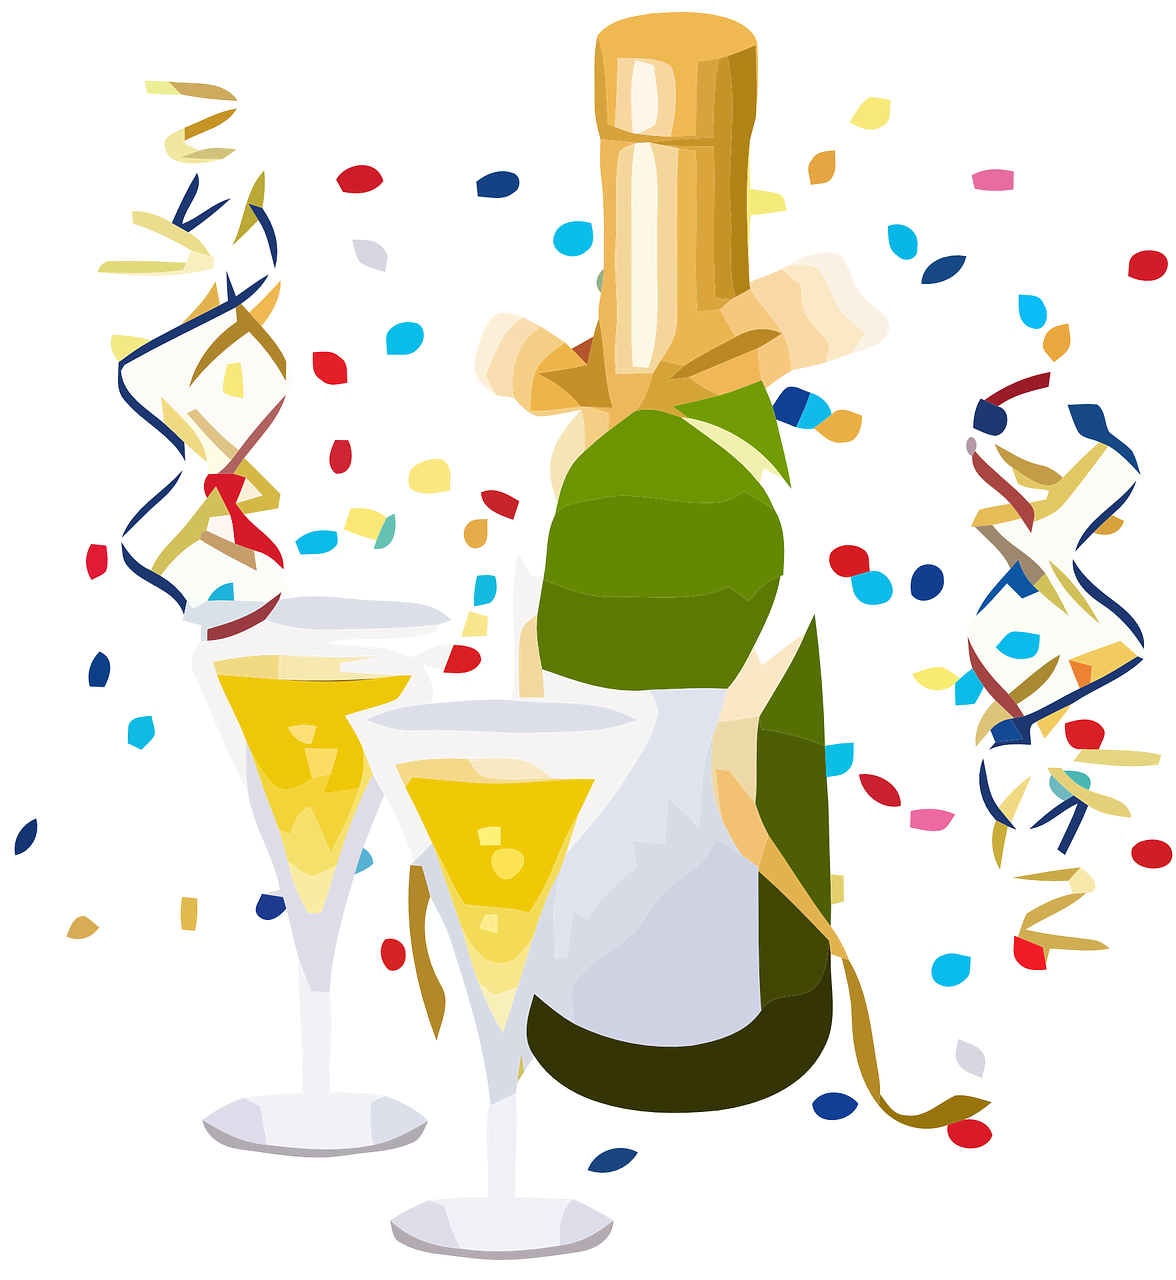 Image of celebrating with champagne